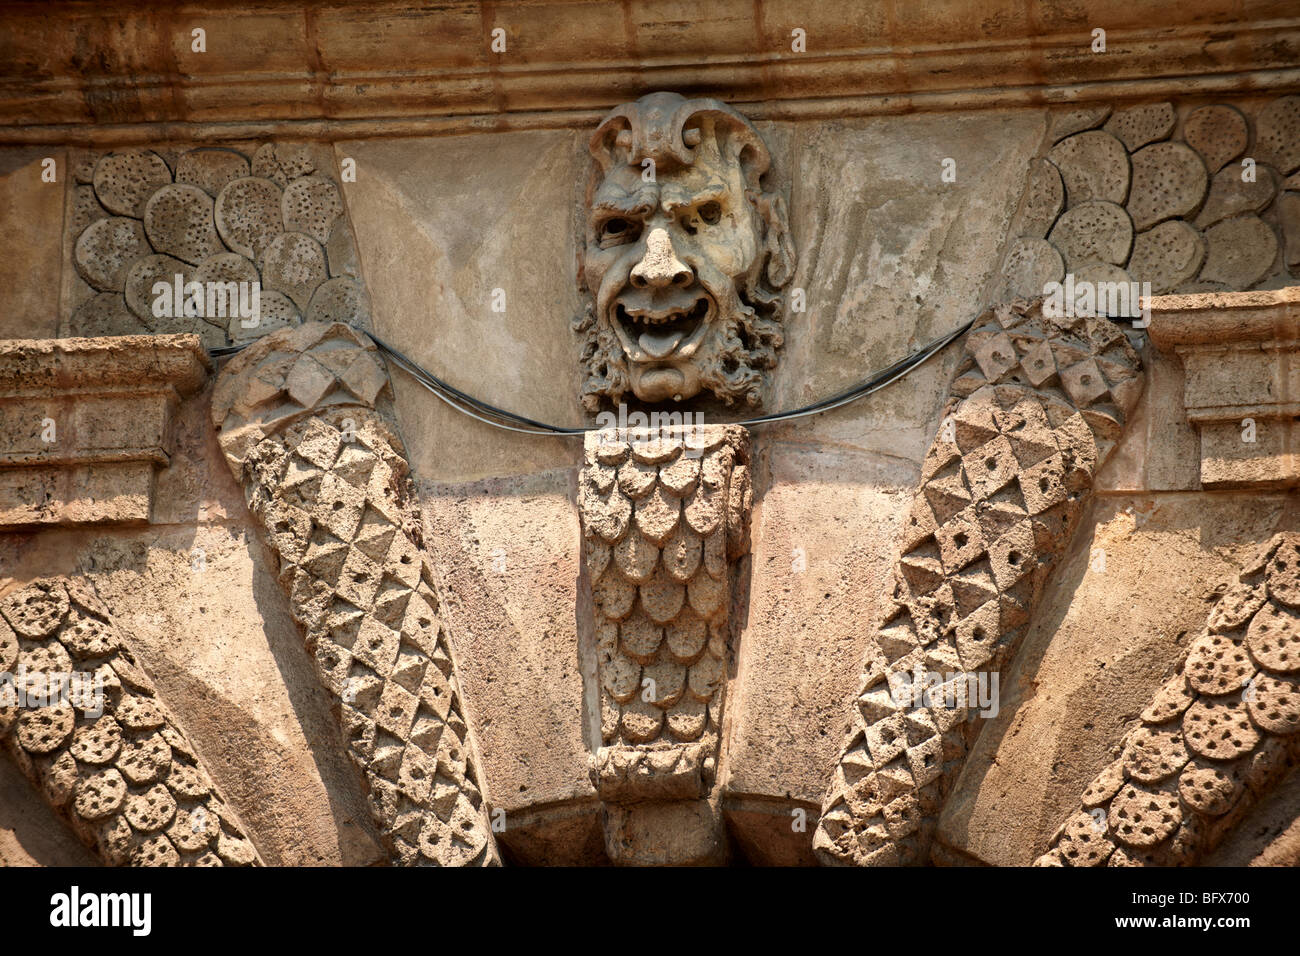 Pota Nuova arch sculptures, architectural decoration, Palermo Sicily - Stock Image